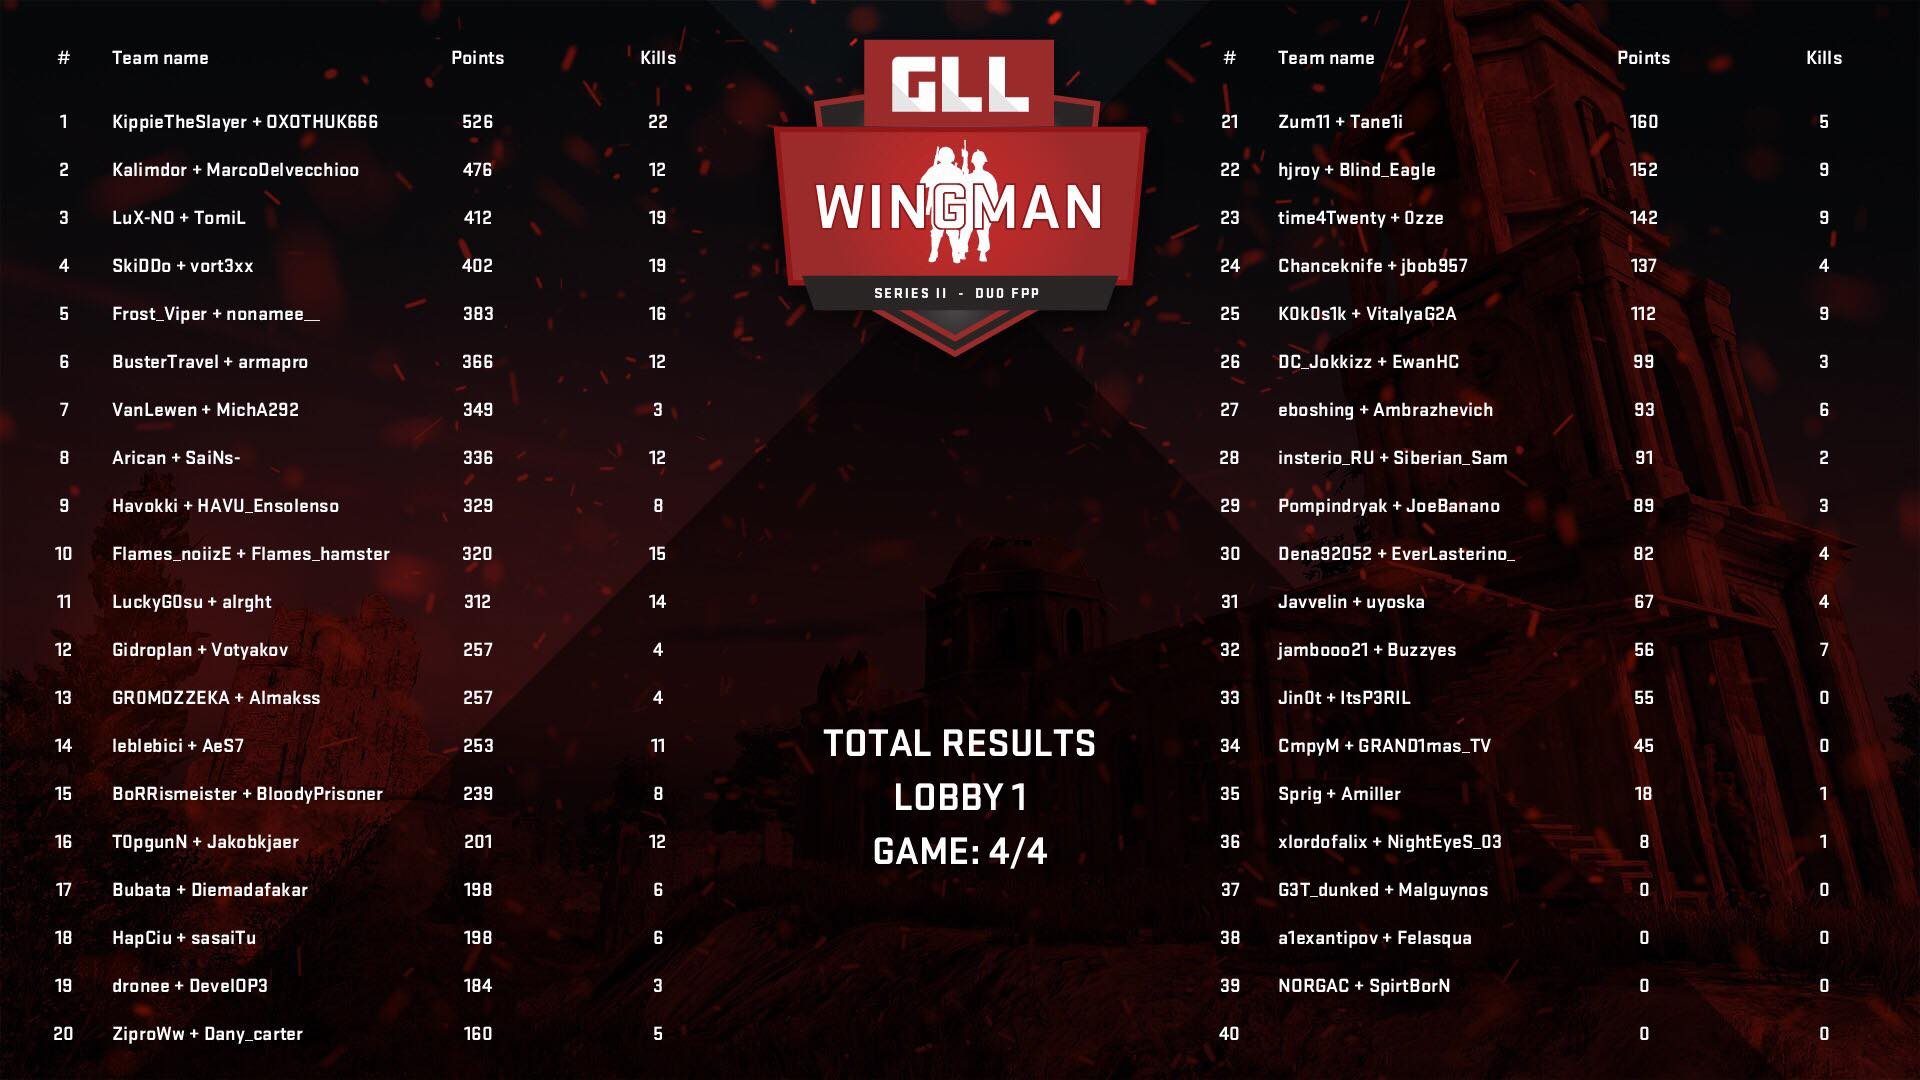 The overall standings from our group, nicely laid out in an image from GLL. (It was lobby 3 but, I guess they just forgot to edit that bit, it was late.)